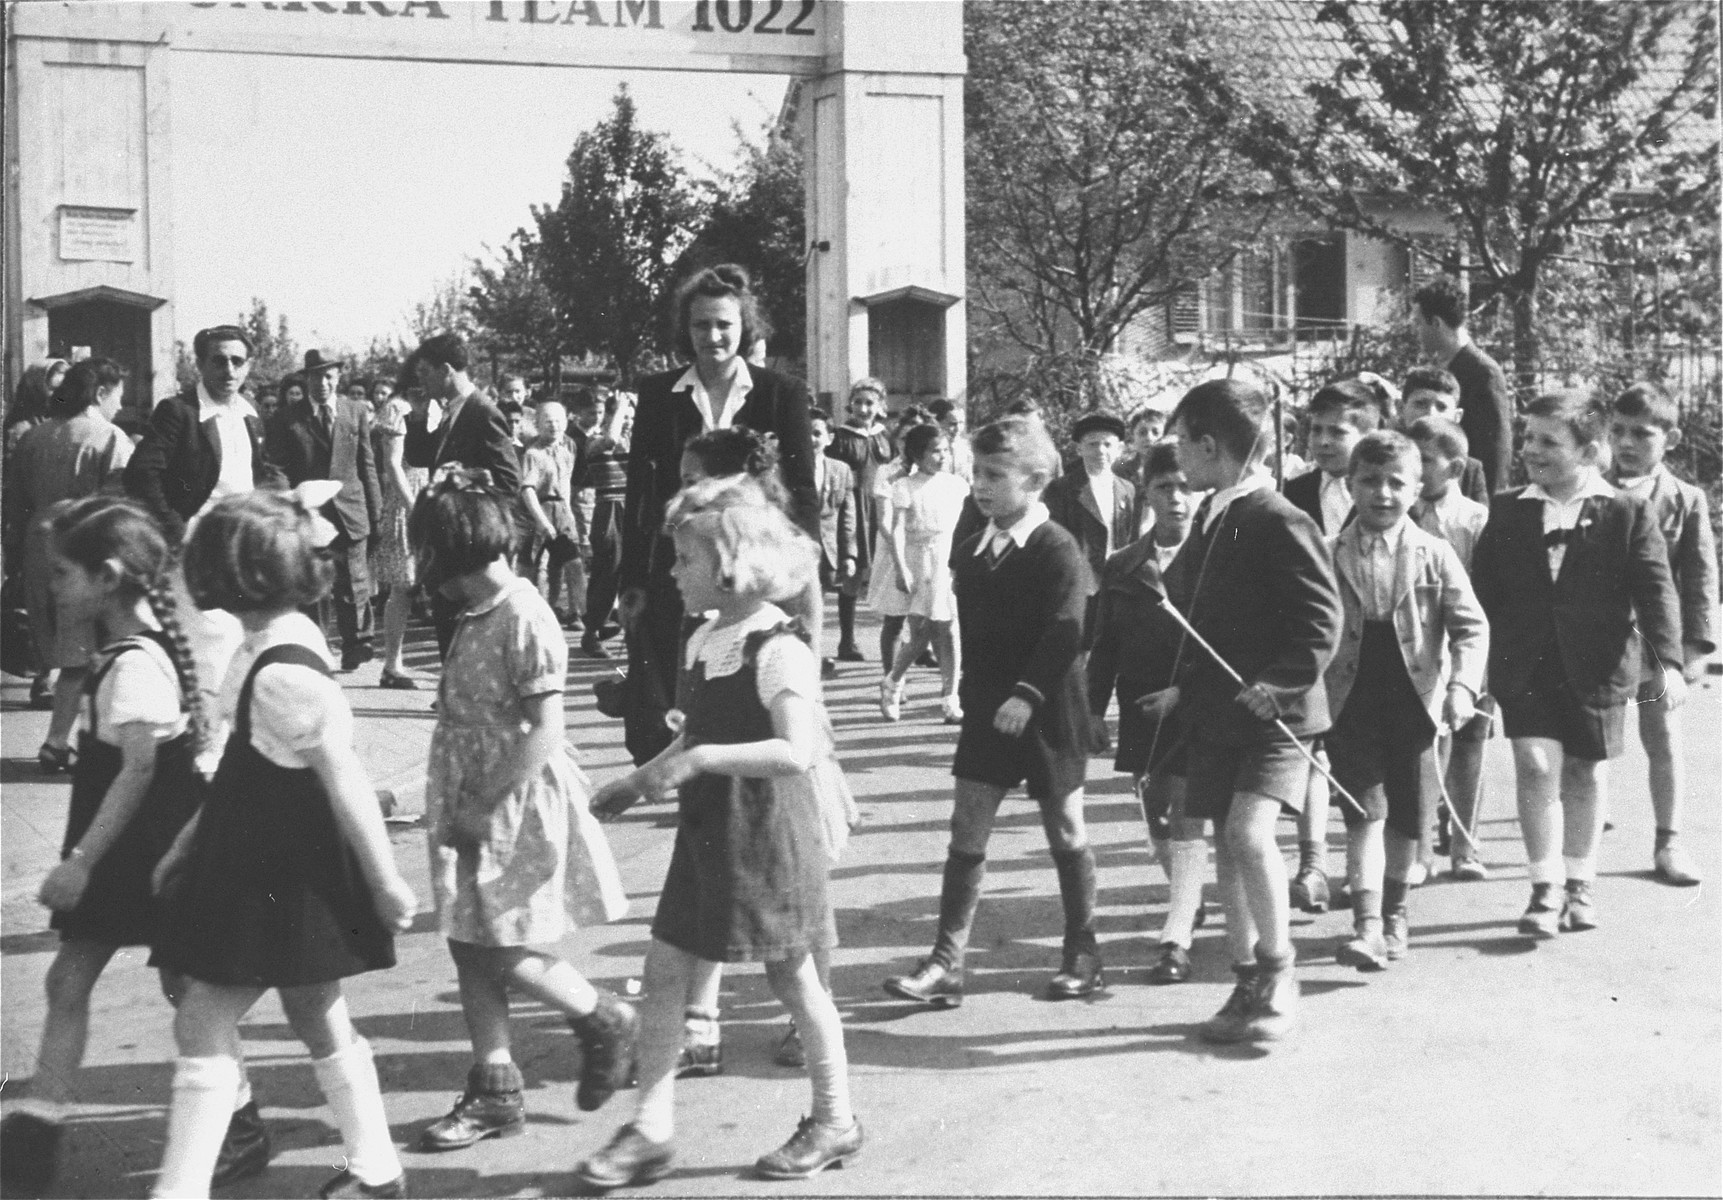 Jewish children walk hand-in-hand through the entrance to the Zeilsheim displaced person's camp during a Lag B'omer festival.